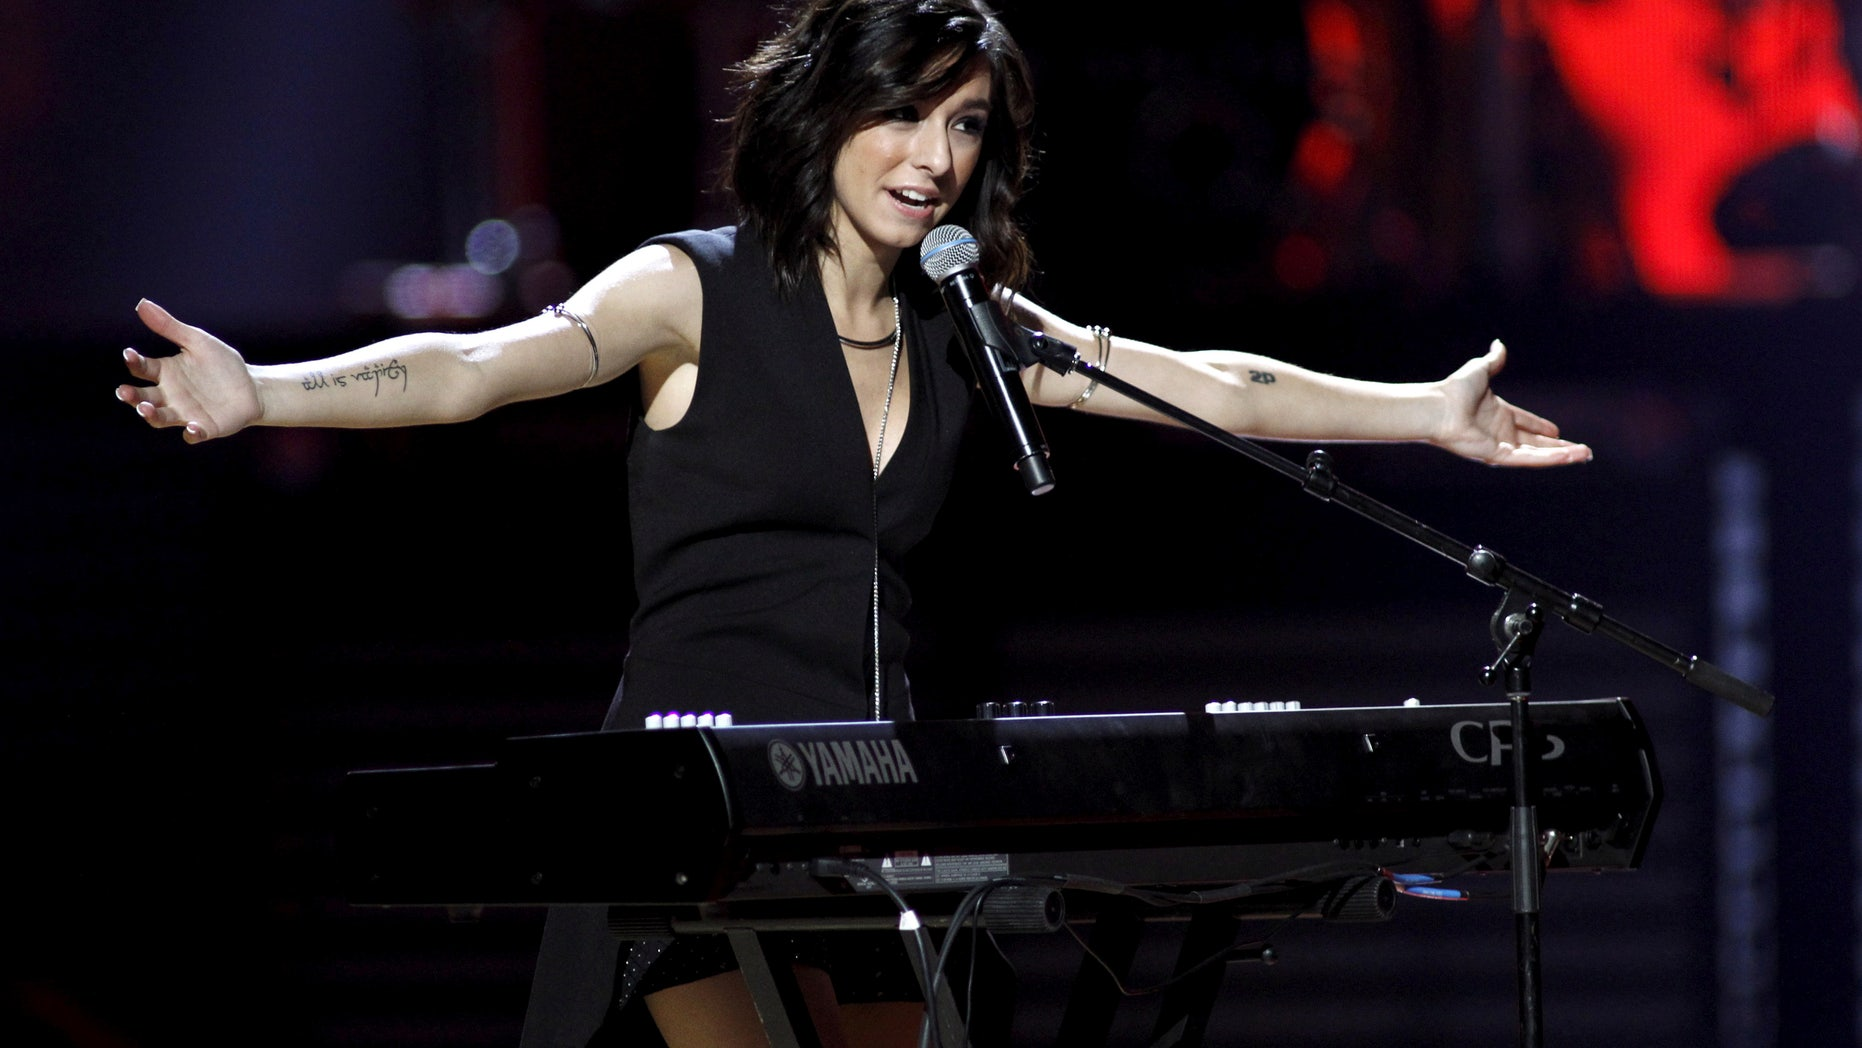 Macy's iHeartRadio Rising Star singer Christina Grimmie performs during the 2015 iHeartRadio Music Festival at the MGM Grand Garden Arena in Las Vegas, Nevada September 18, 2015.